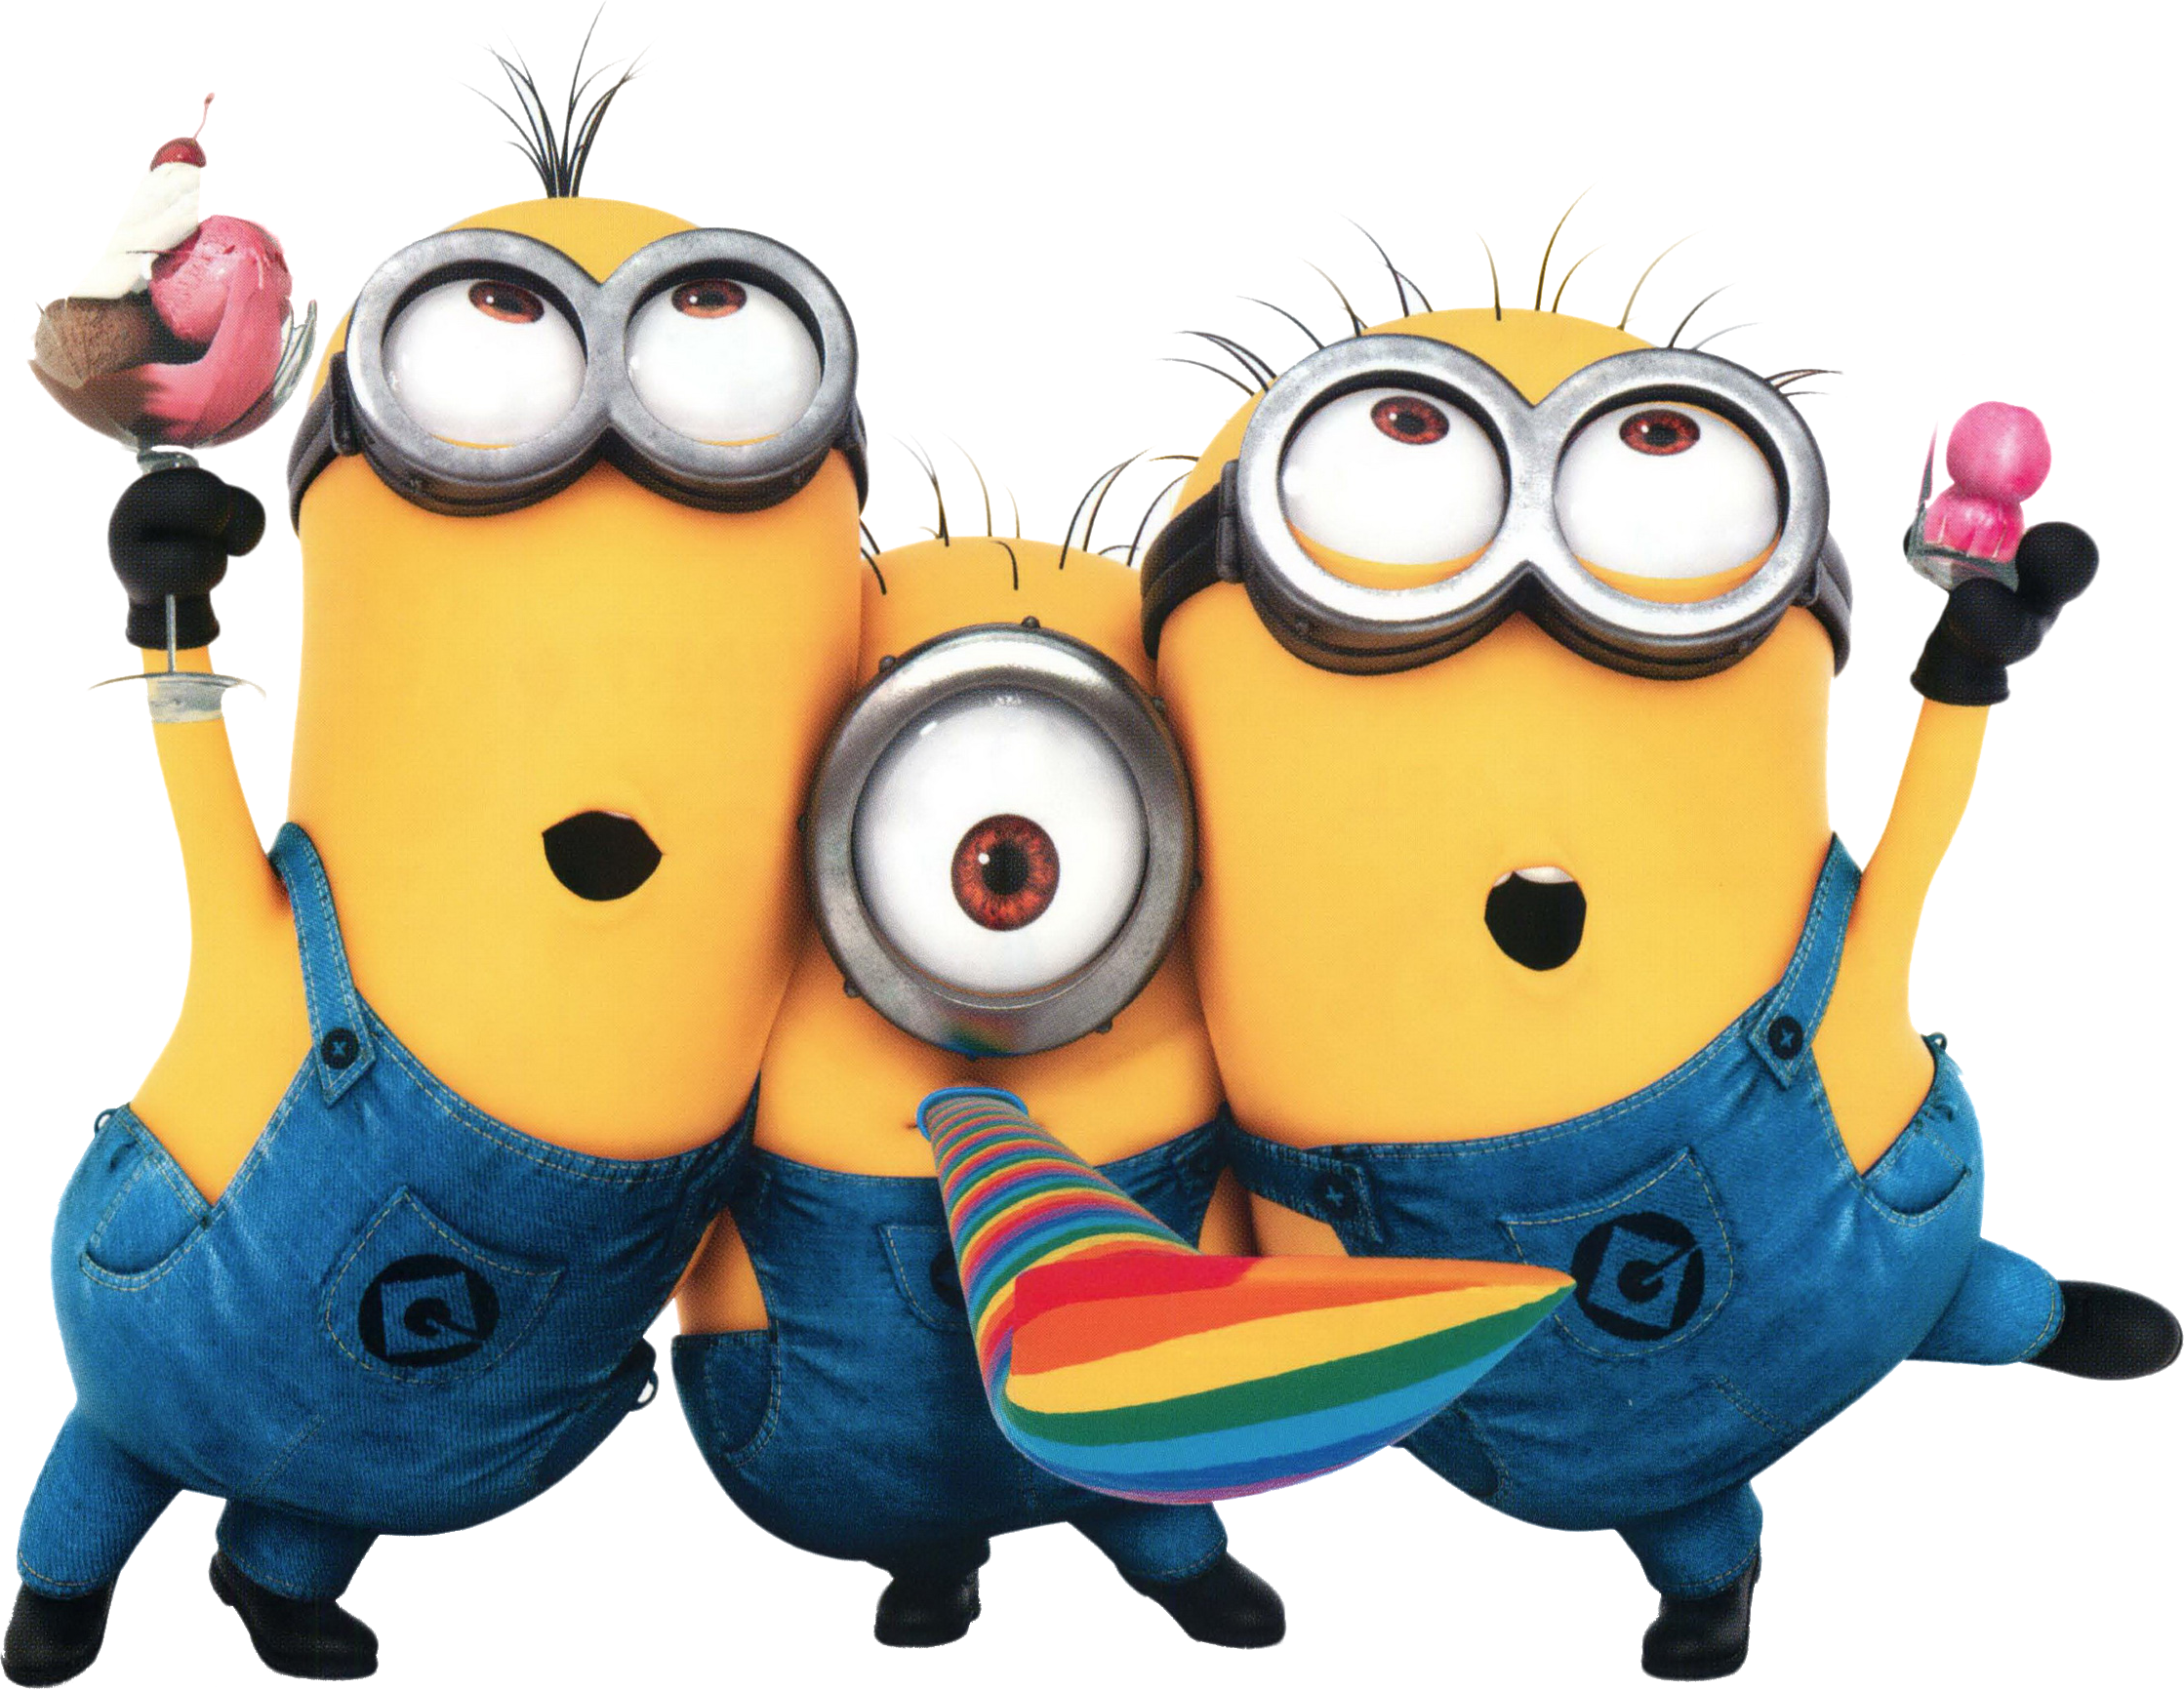 Free minions clipart clipart images gallery for free download.